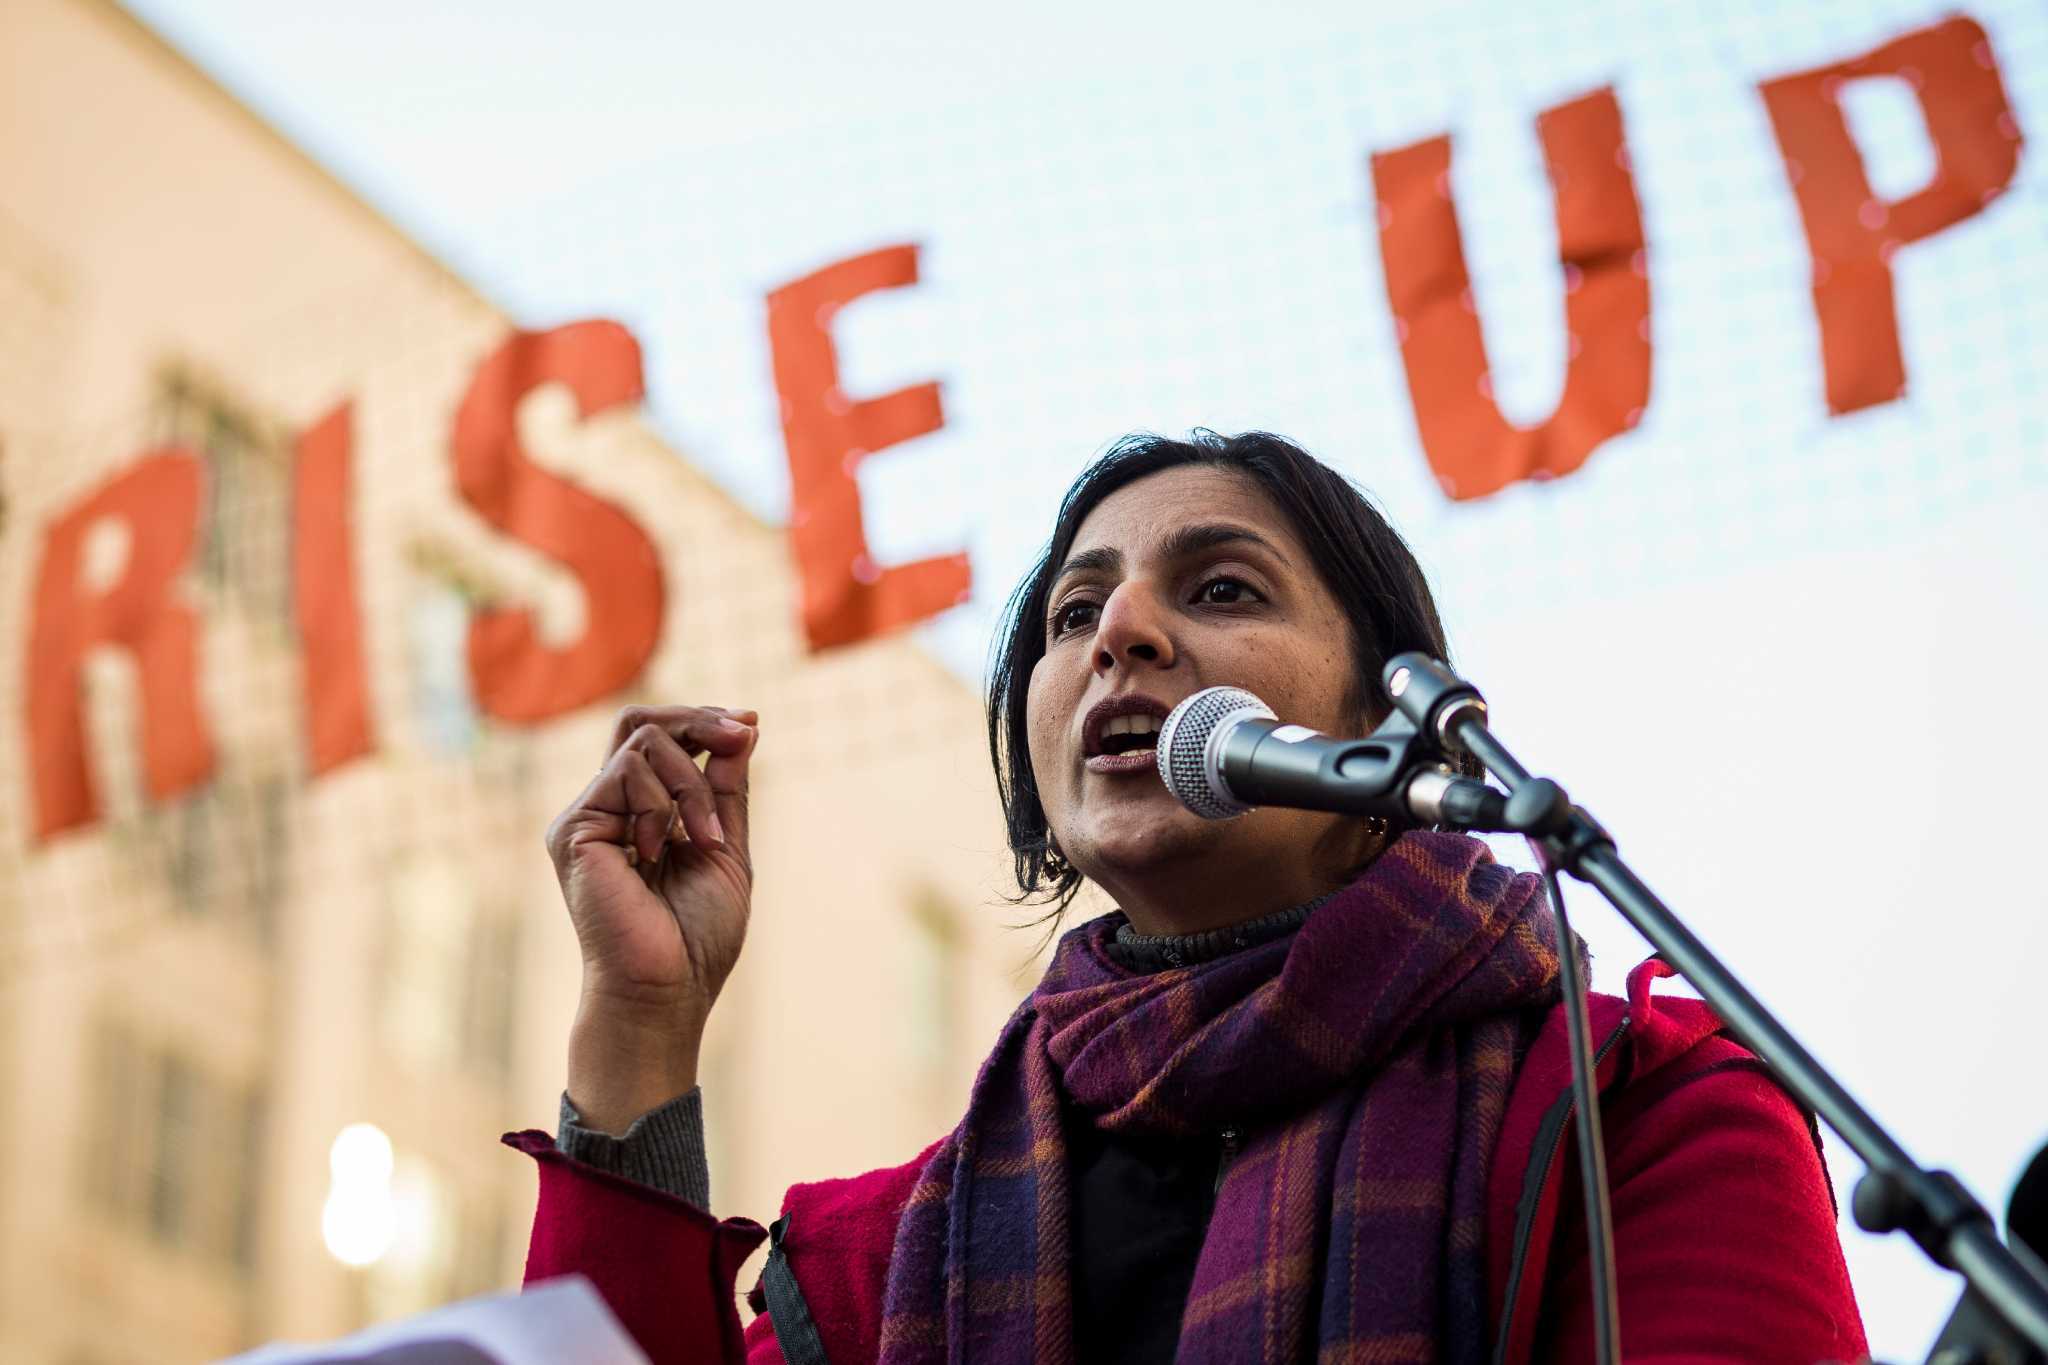 Sawant sets reelection announcement, with challenger Beto Yarce in the field